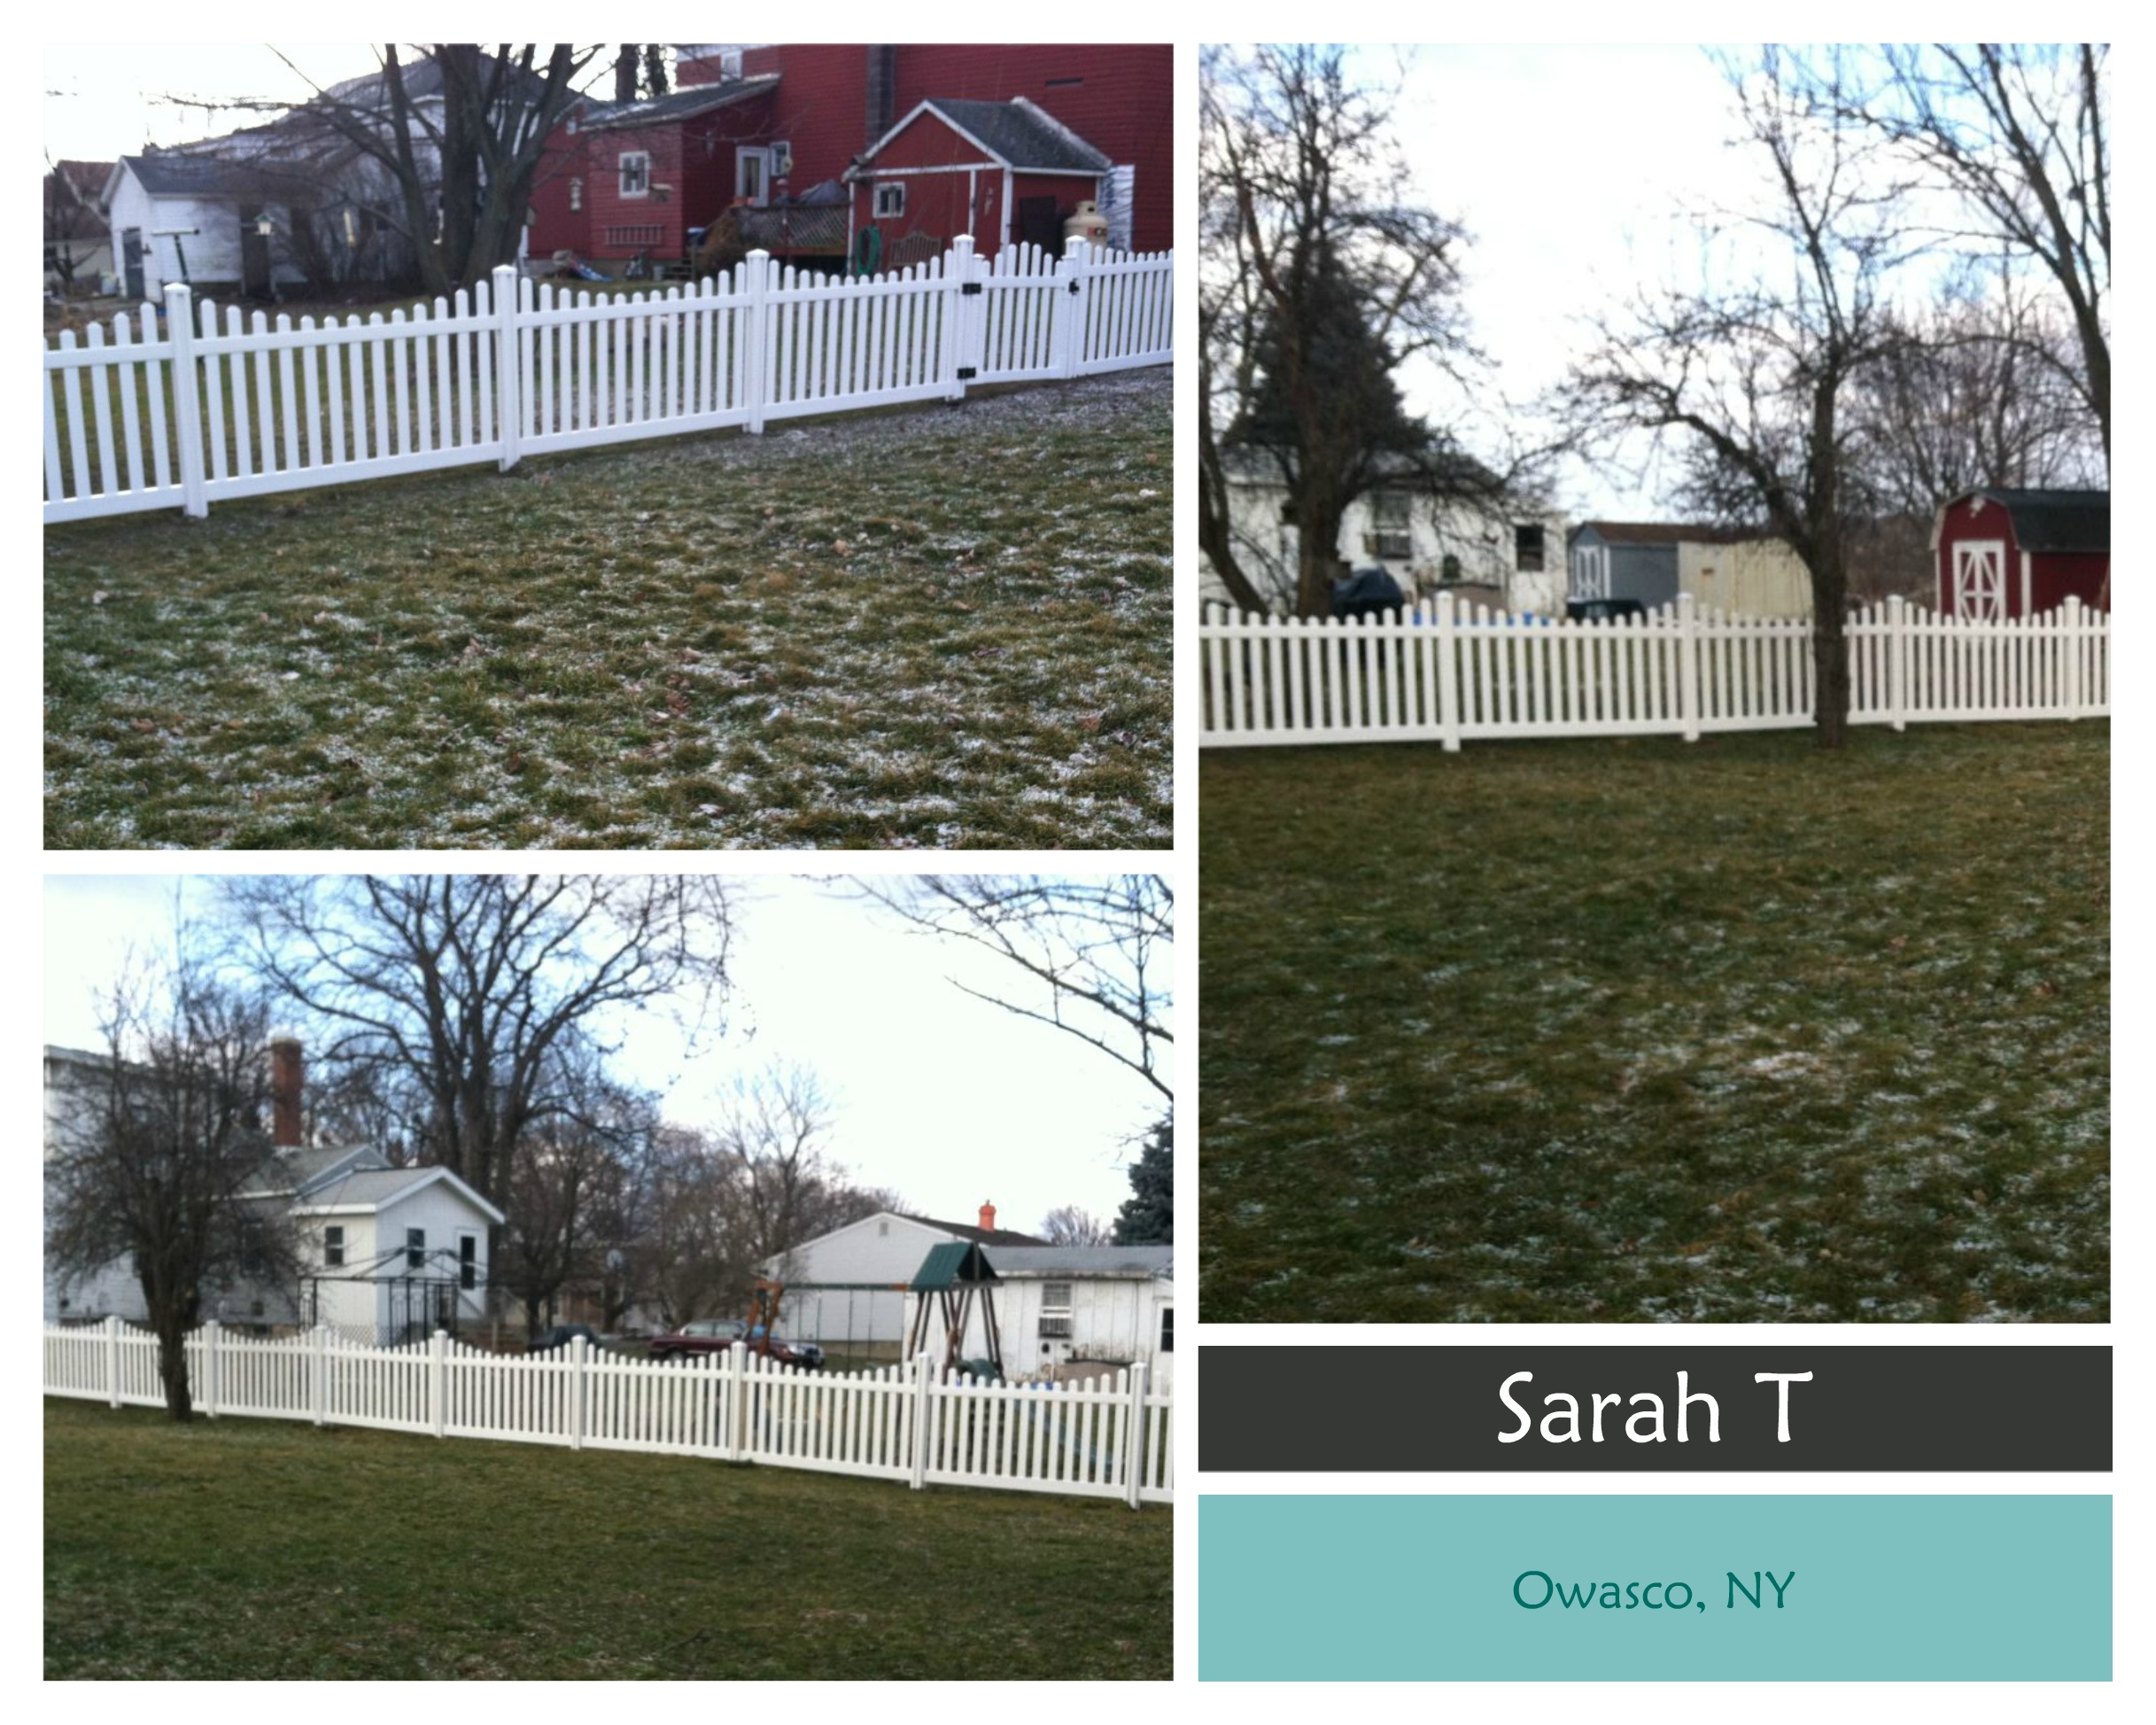 Sarah T in Owasco NY takes home second prize of $250 with 144 votes for her Jiminy Picket Vinyl Fence.